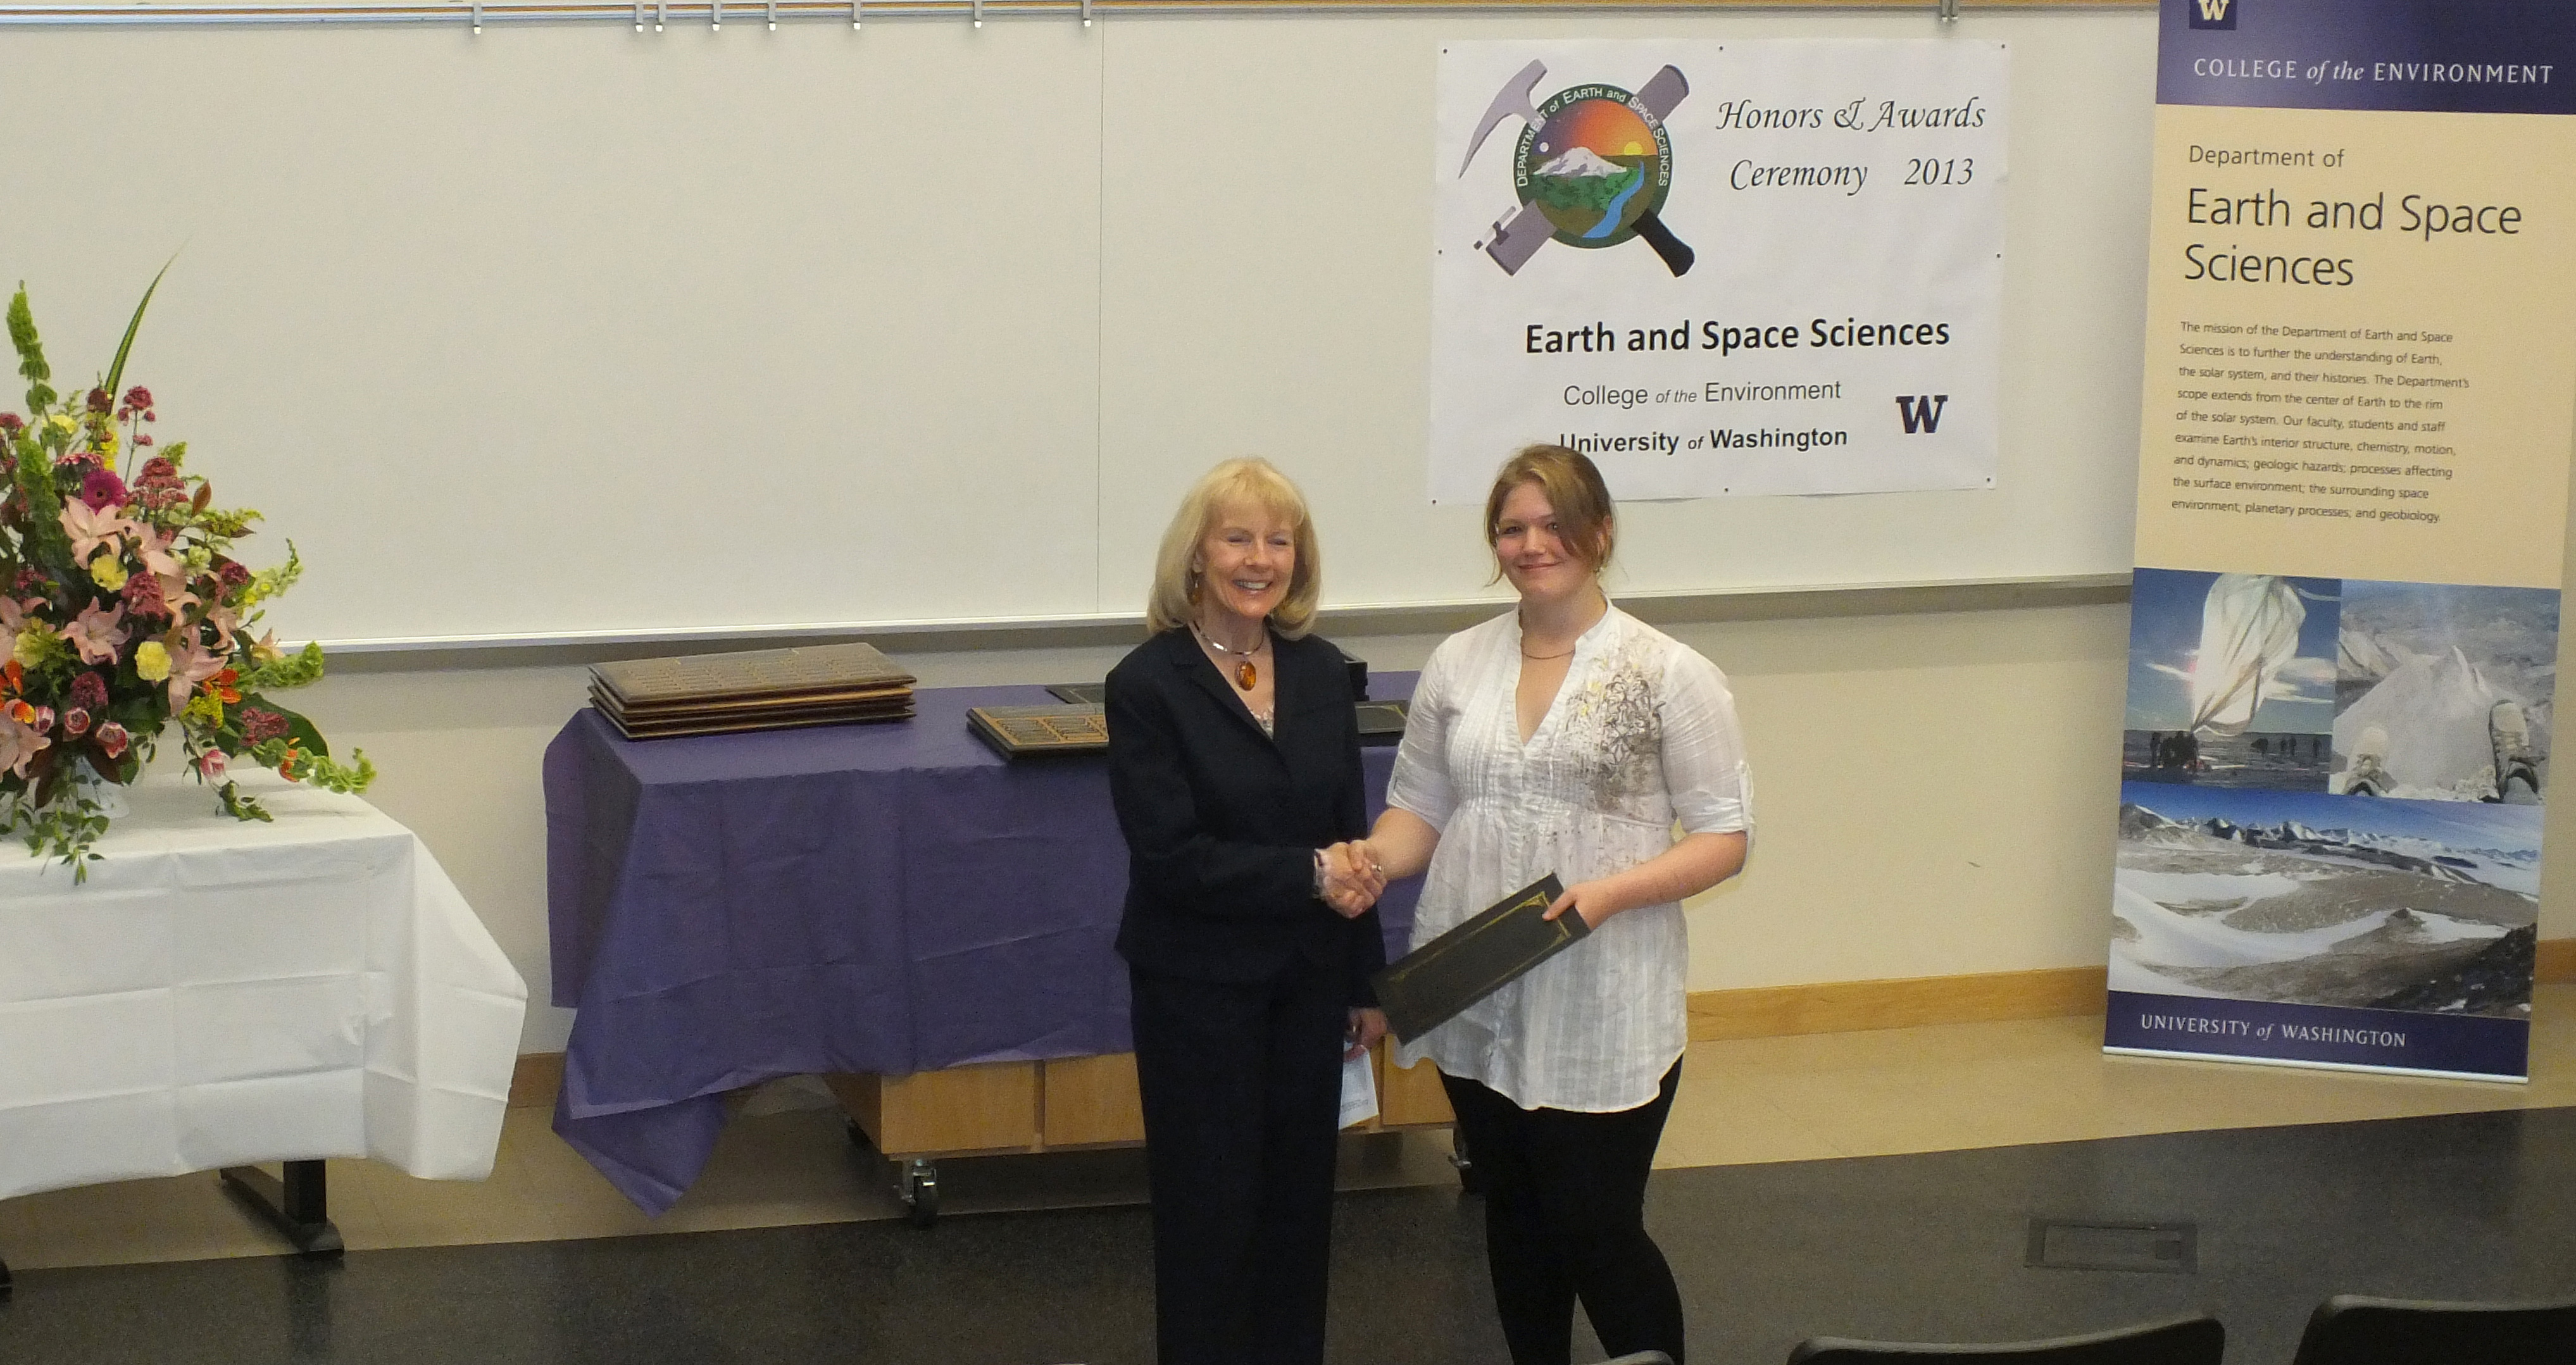 Photo of Reanne Wolfley receiving the North Seattle Lapidary & Mineral Club Award from Marcia Skinner.